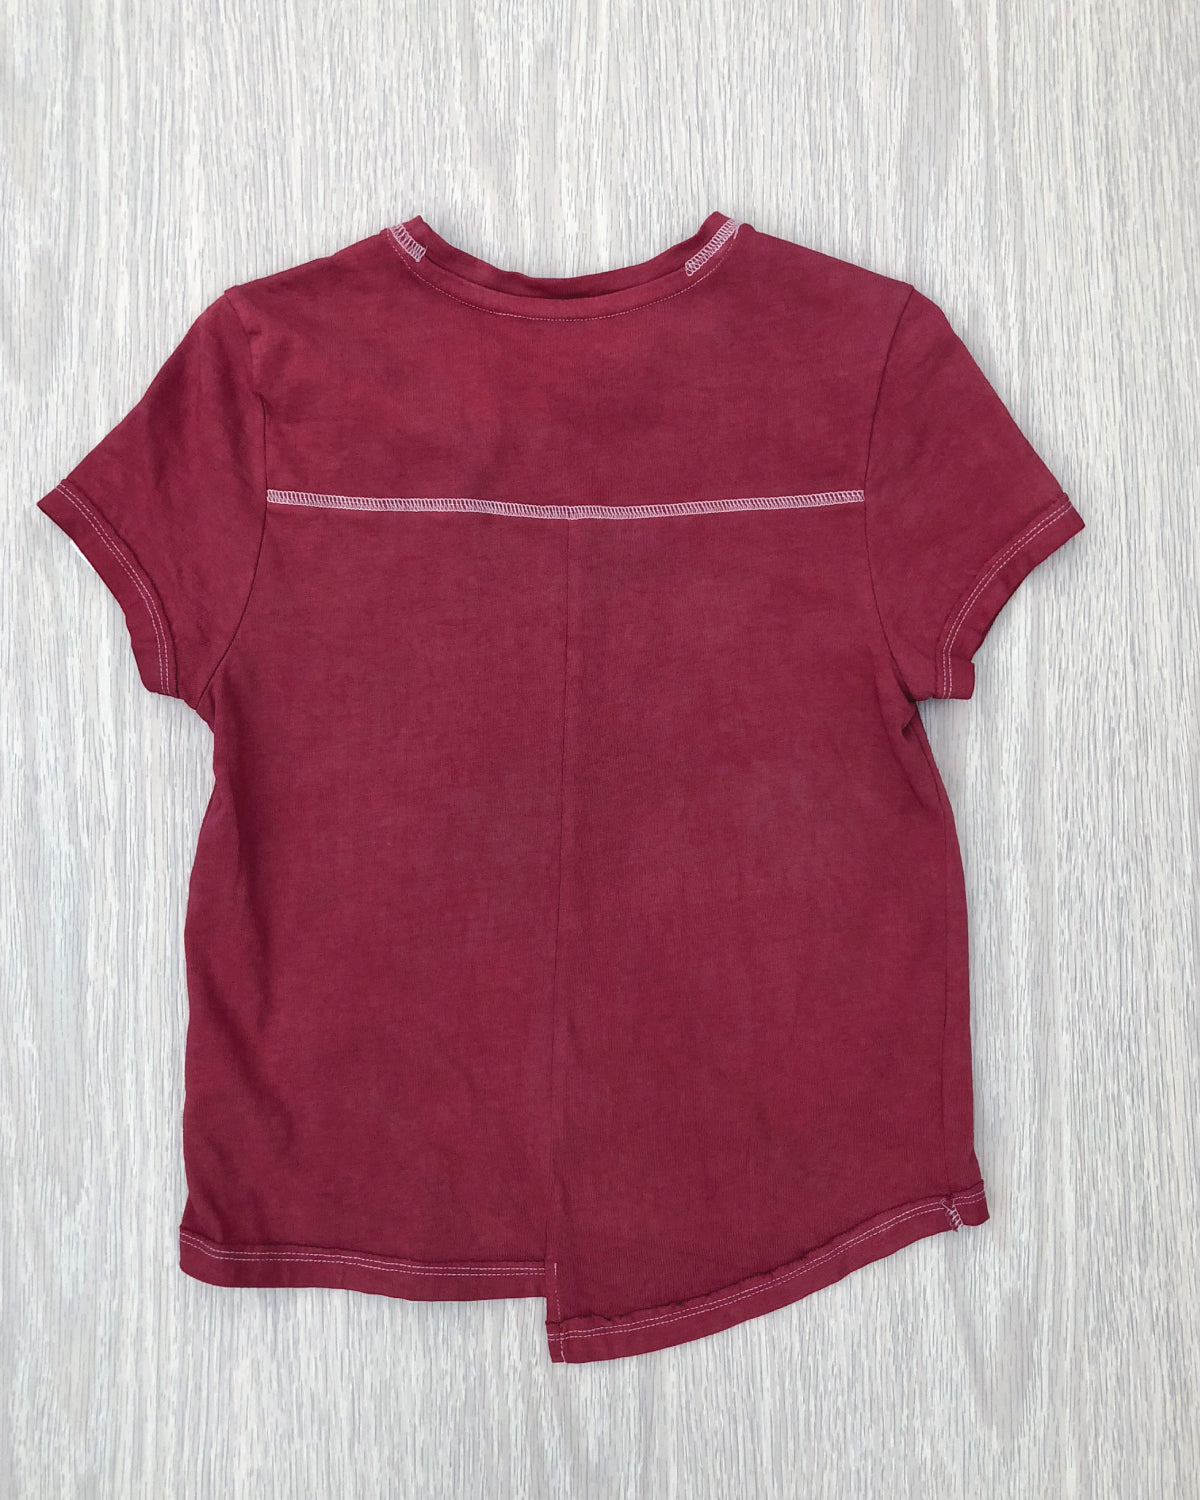 The Story of OKI Deep Red Tee